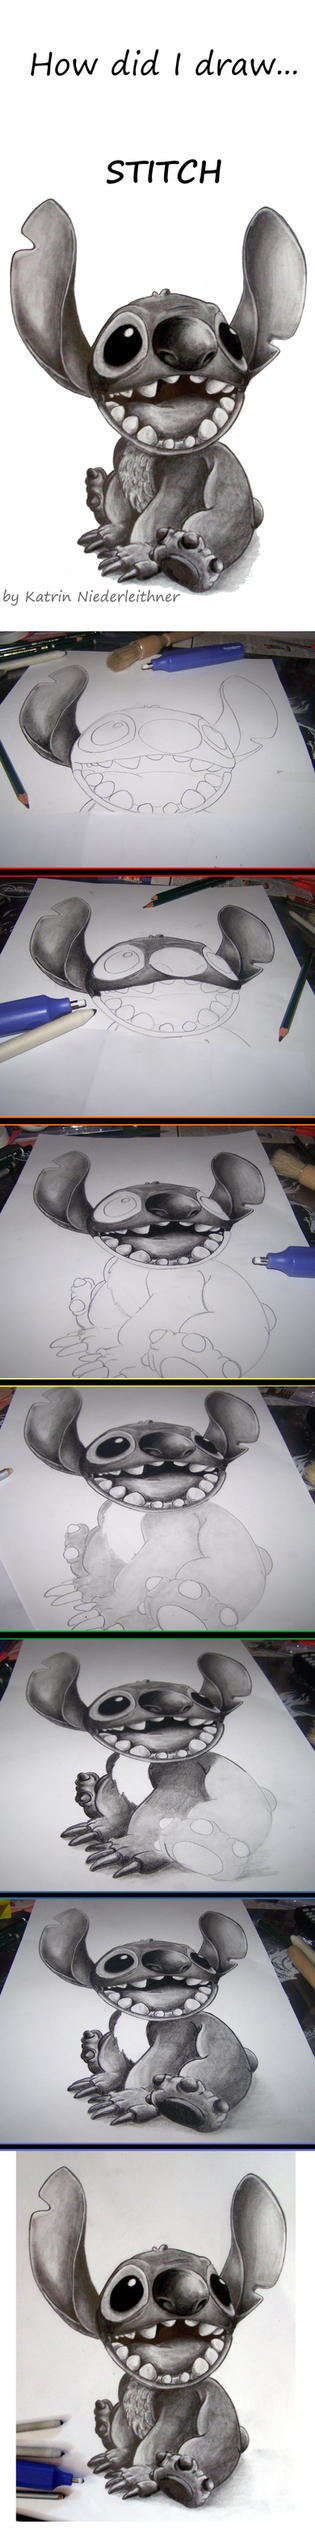 How did I draw... STITCH by Cathy86